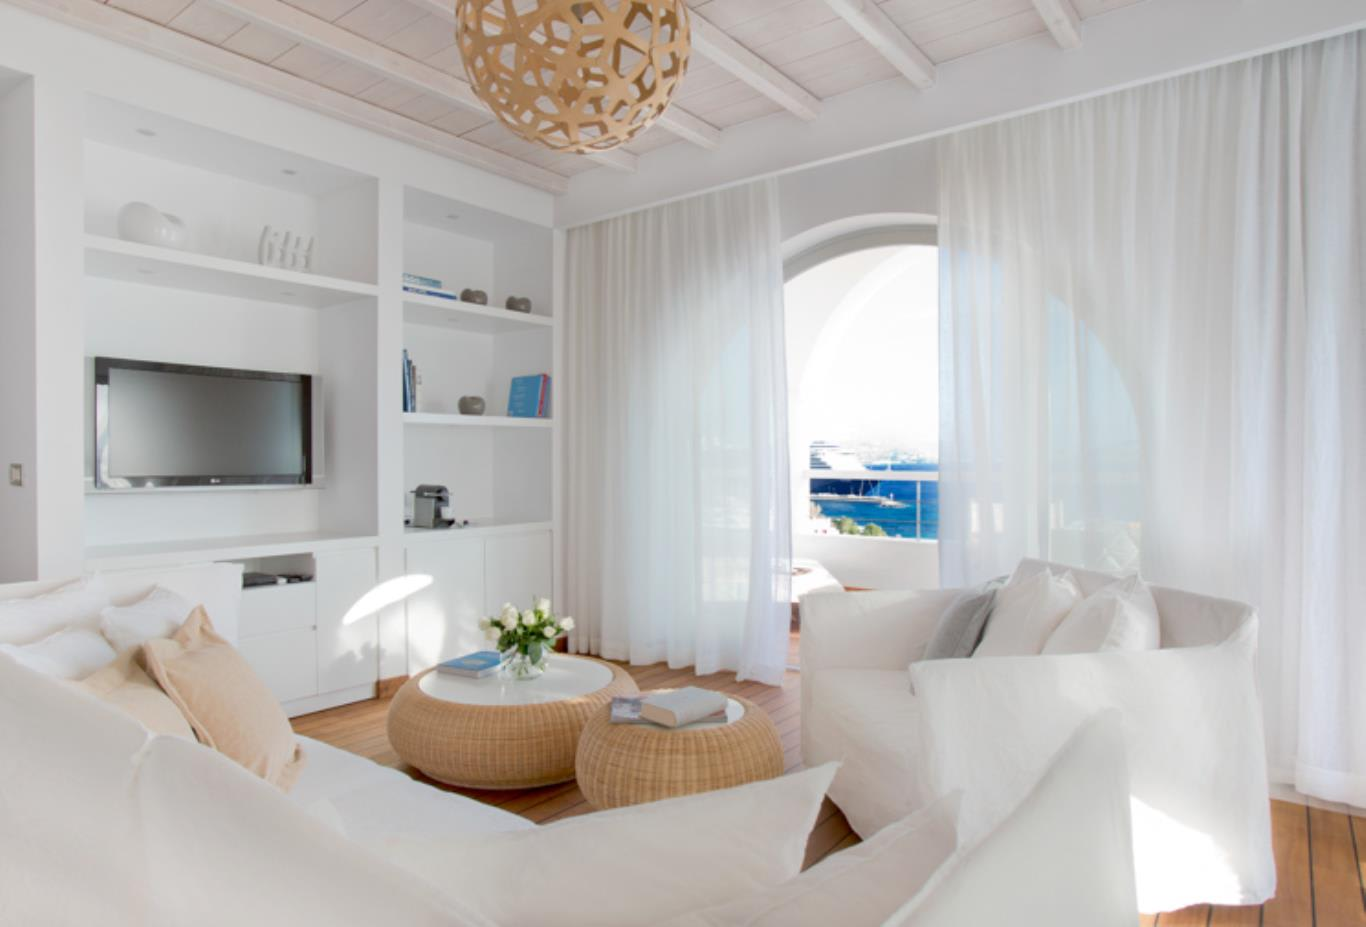 Mykonos Suite 2 bedroom living room